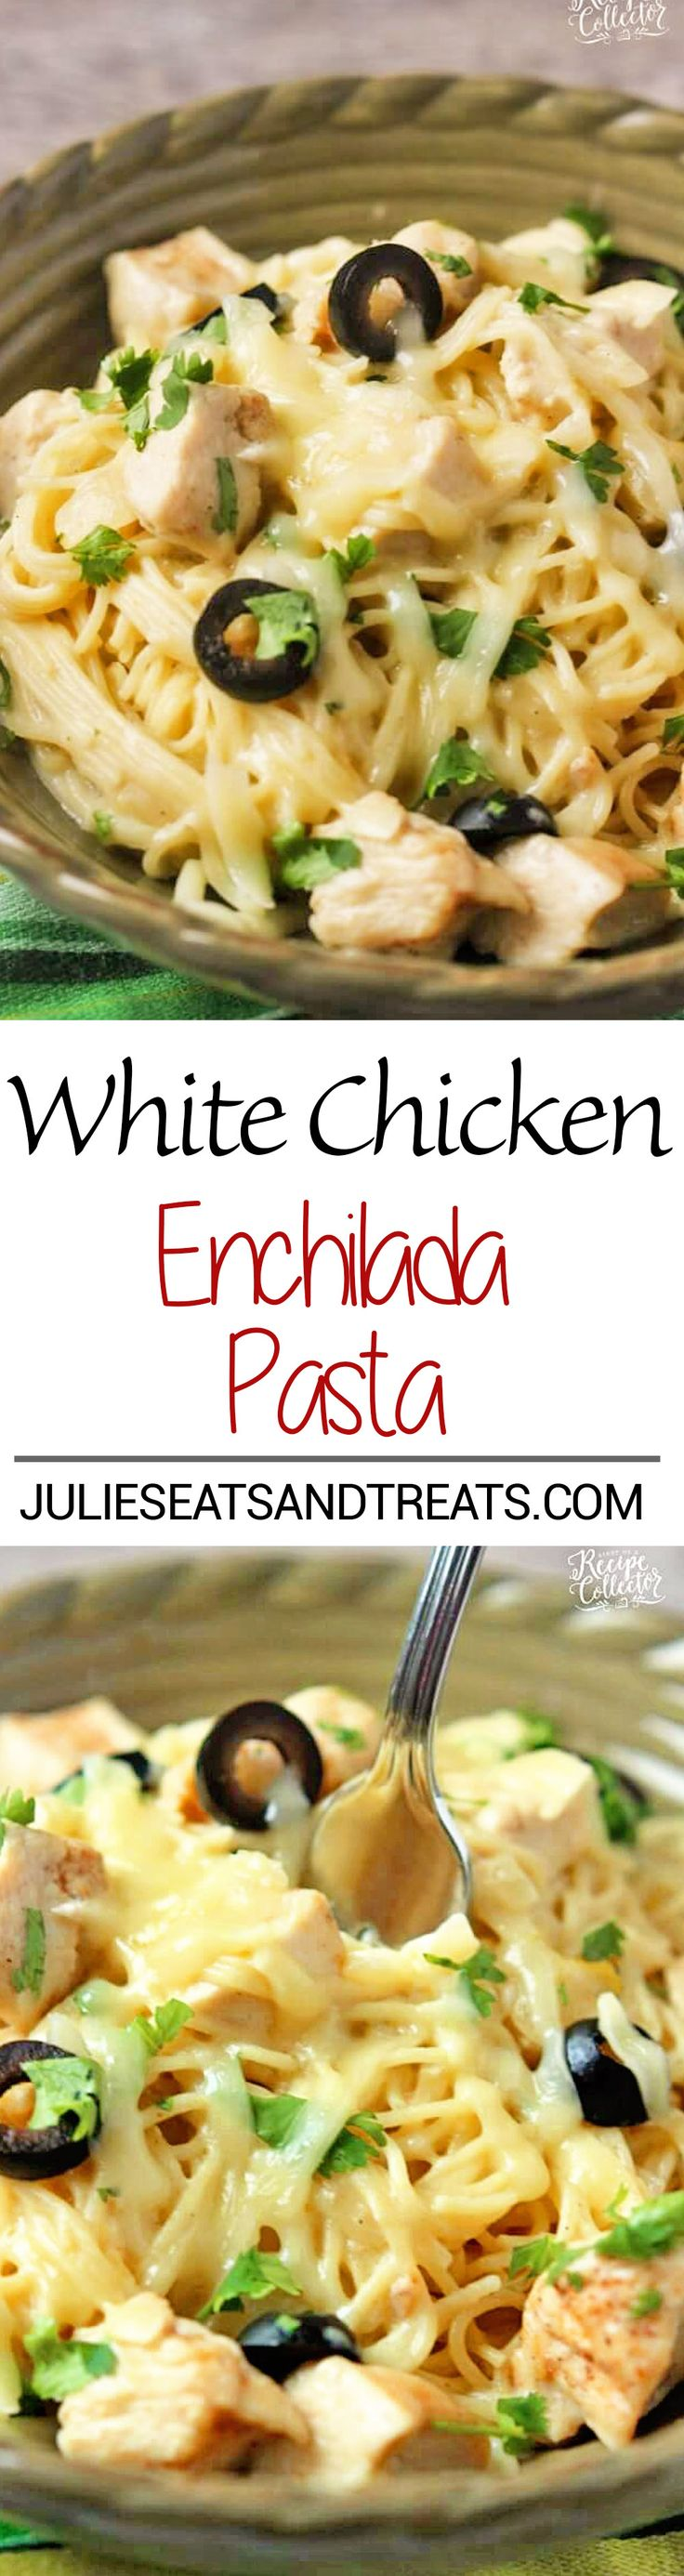 White Chicken Enchilada Pasta Recipe – A delicious pasta filled with all the wonderful flavor of white chicken enchiladas with the help of green chilies, a little sour cream, and melted jack cheese! on MyRecipeMagic.com